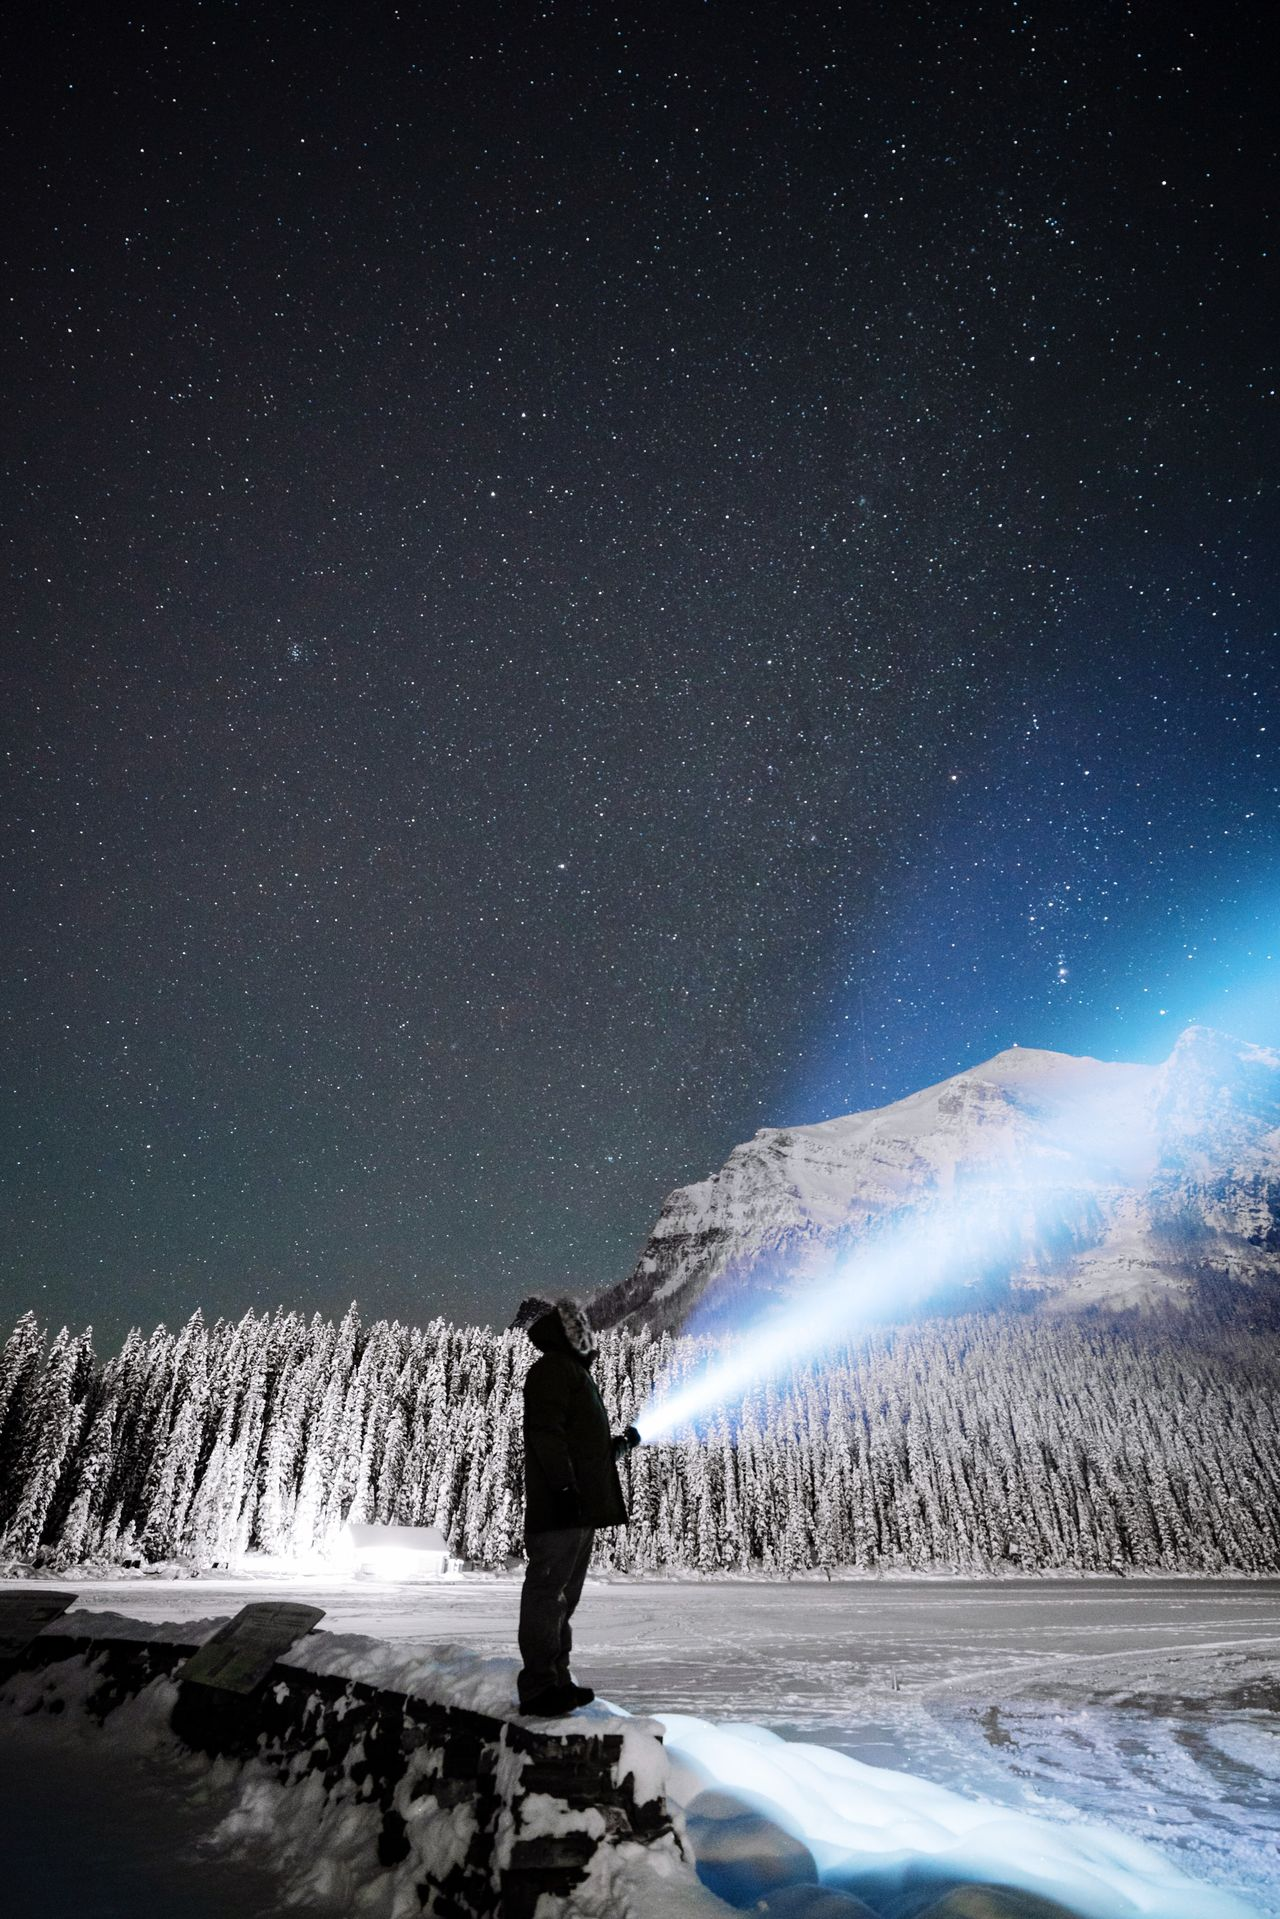 This Week On Eyeem Star - Space Night Winter Snow Cold Temperature Nature Astronomy Milky Way EyeEm Getting Inspired Awesome_shots Adventure Beauty In Nature EyeEmBestPics EyeEmNewHere Explore Popular Photos VSCO Beauty In Nature EyeEm Nature Lover EyeEm Gallery EyeEm Best Edits EyeEm Best Shots - Nature EyeEm Best Shots